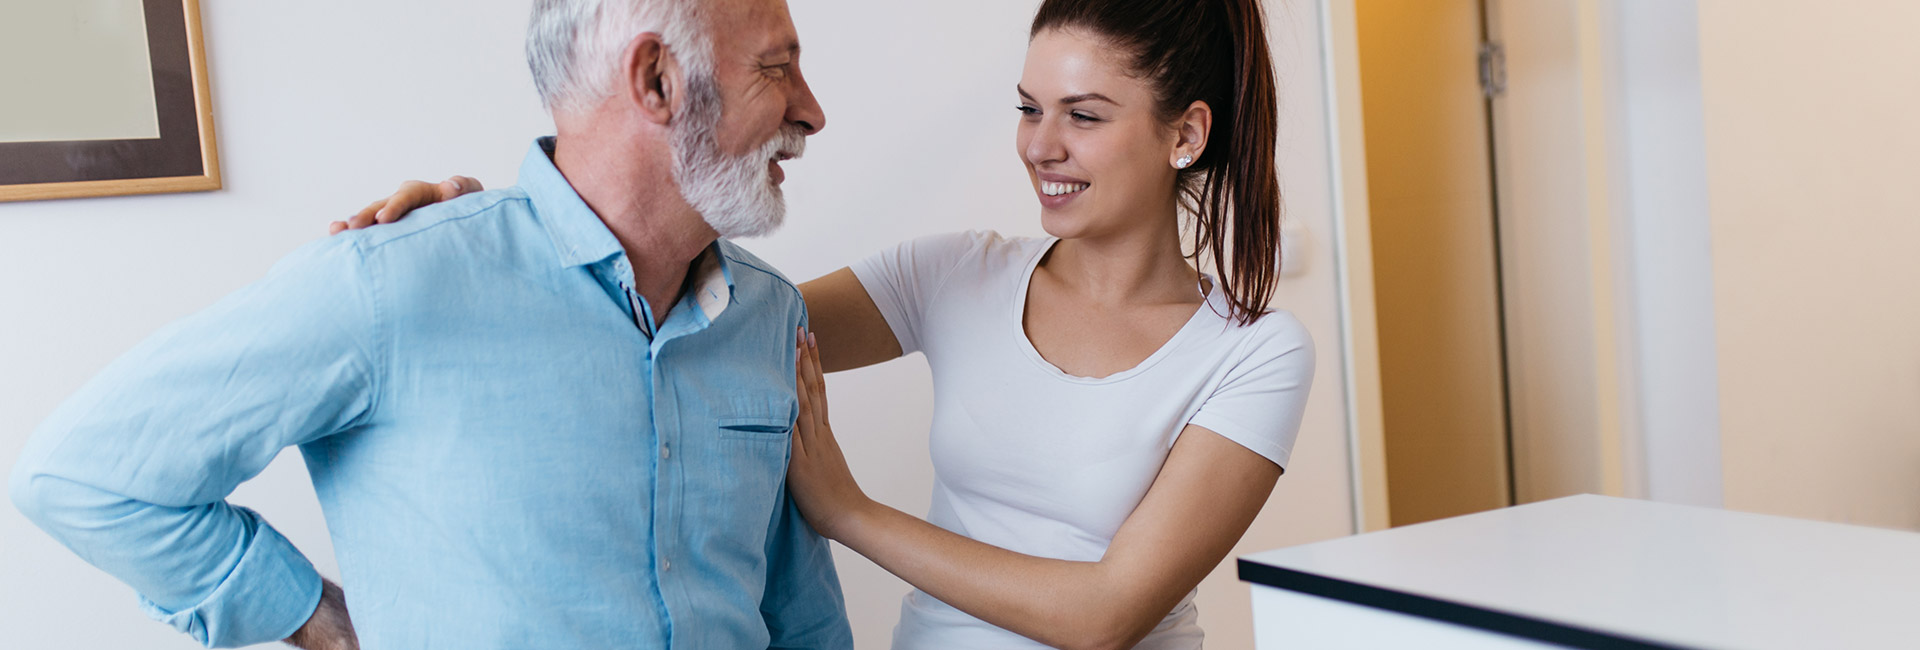 Chronic Pain Treatment - Therapeutic Associates Physical Therapy